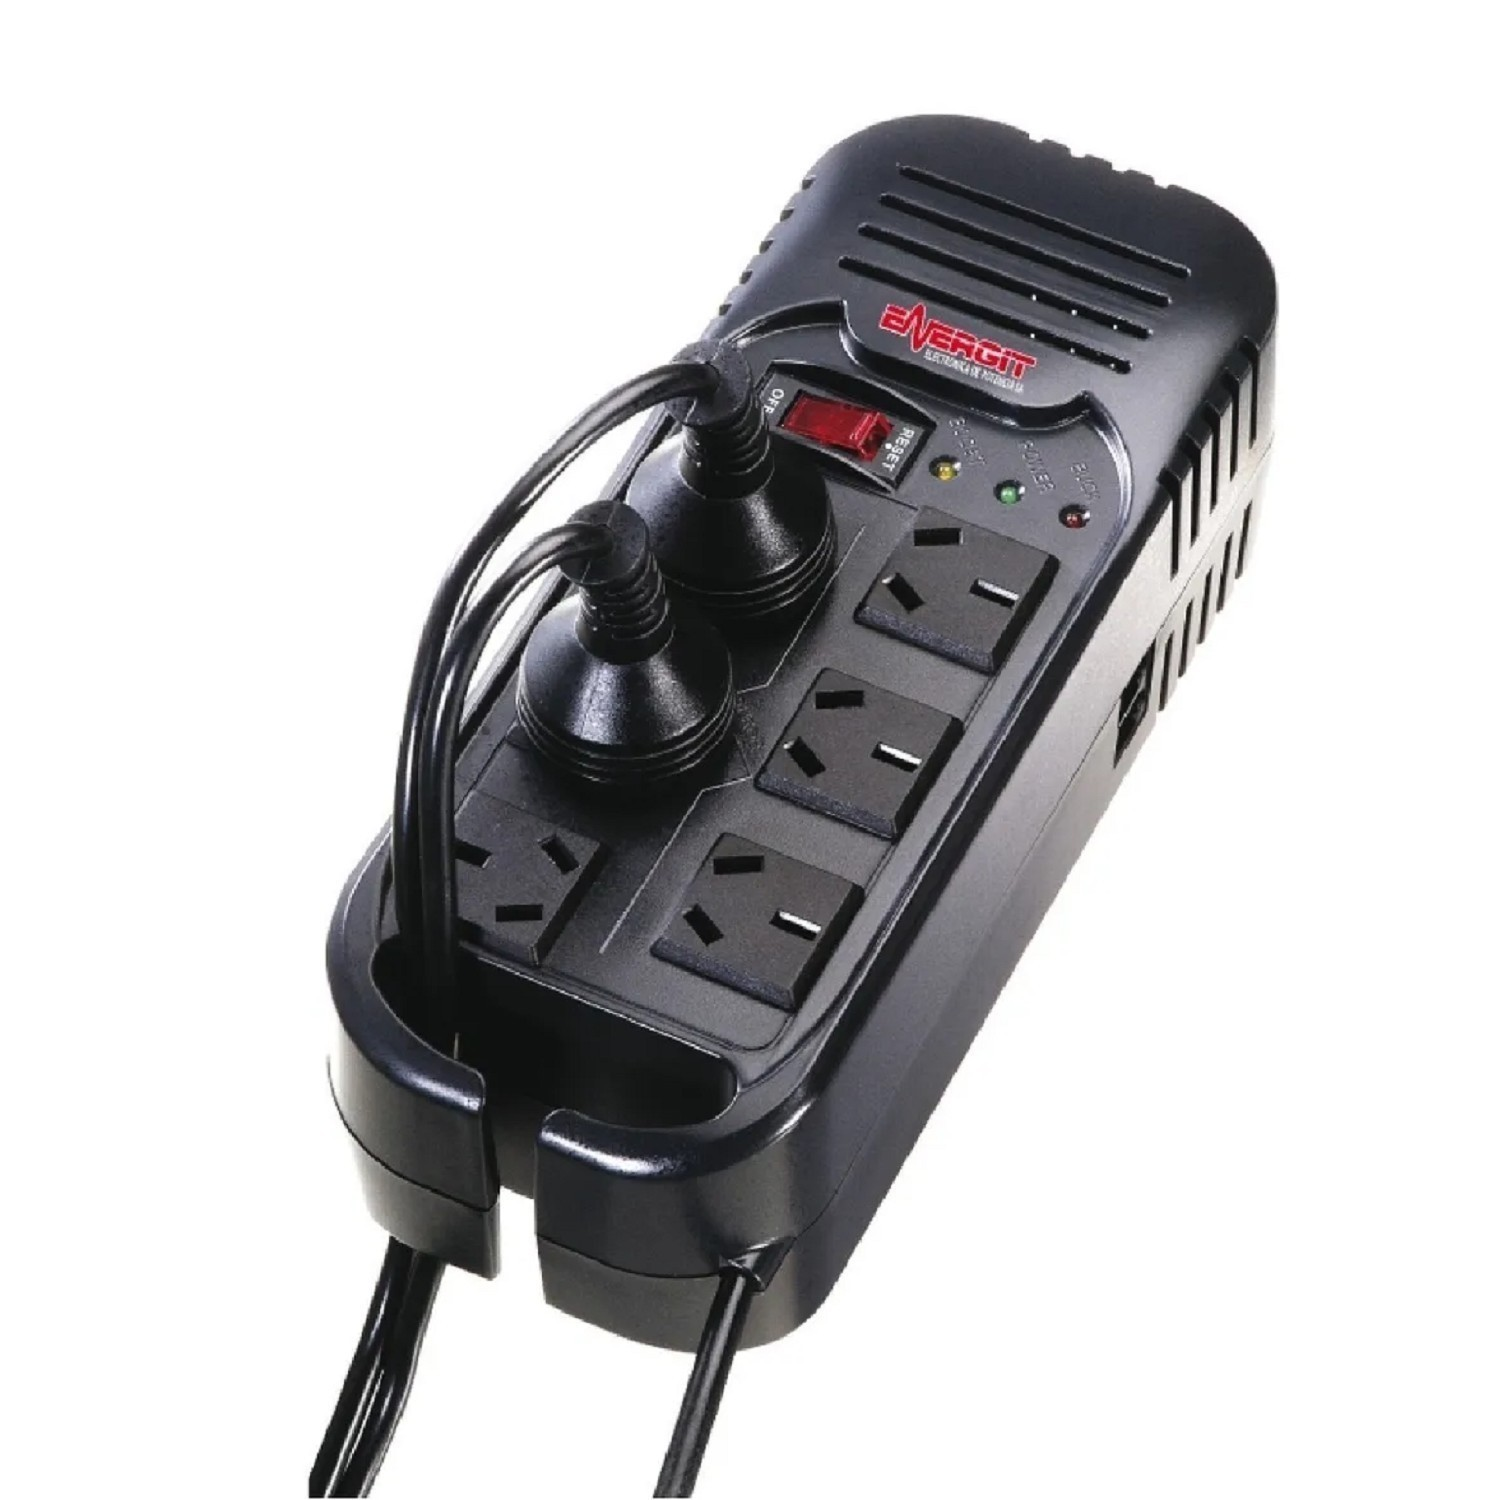 MOTOR LAVARROPAS A CARBON 2º MANO ARISTON AVXD129/ MABE/INDESIT WIL62 (COD. ORIGEN: HXGN2I.07)